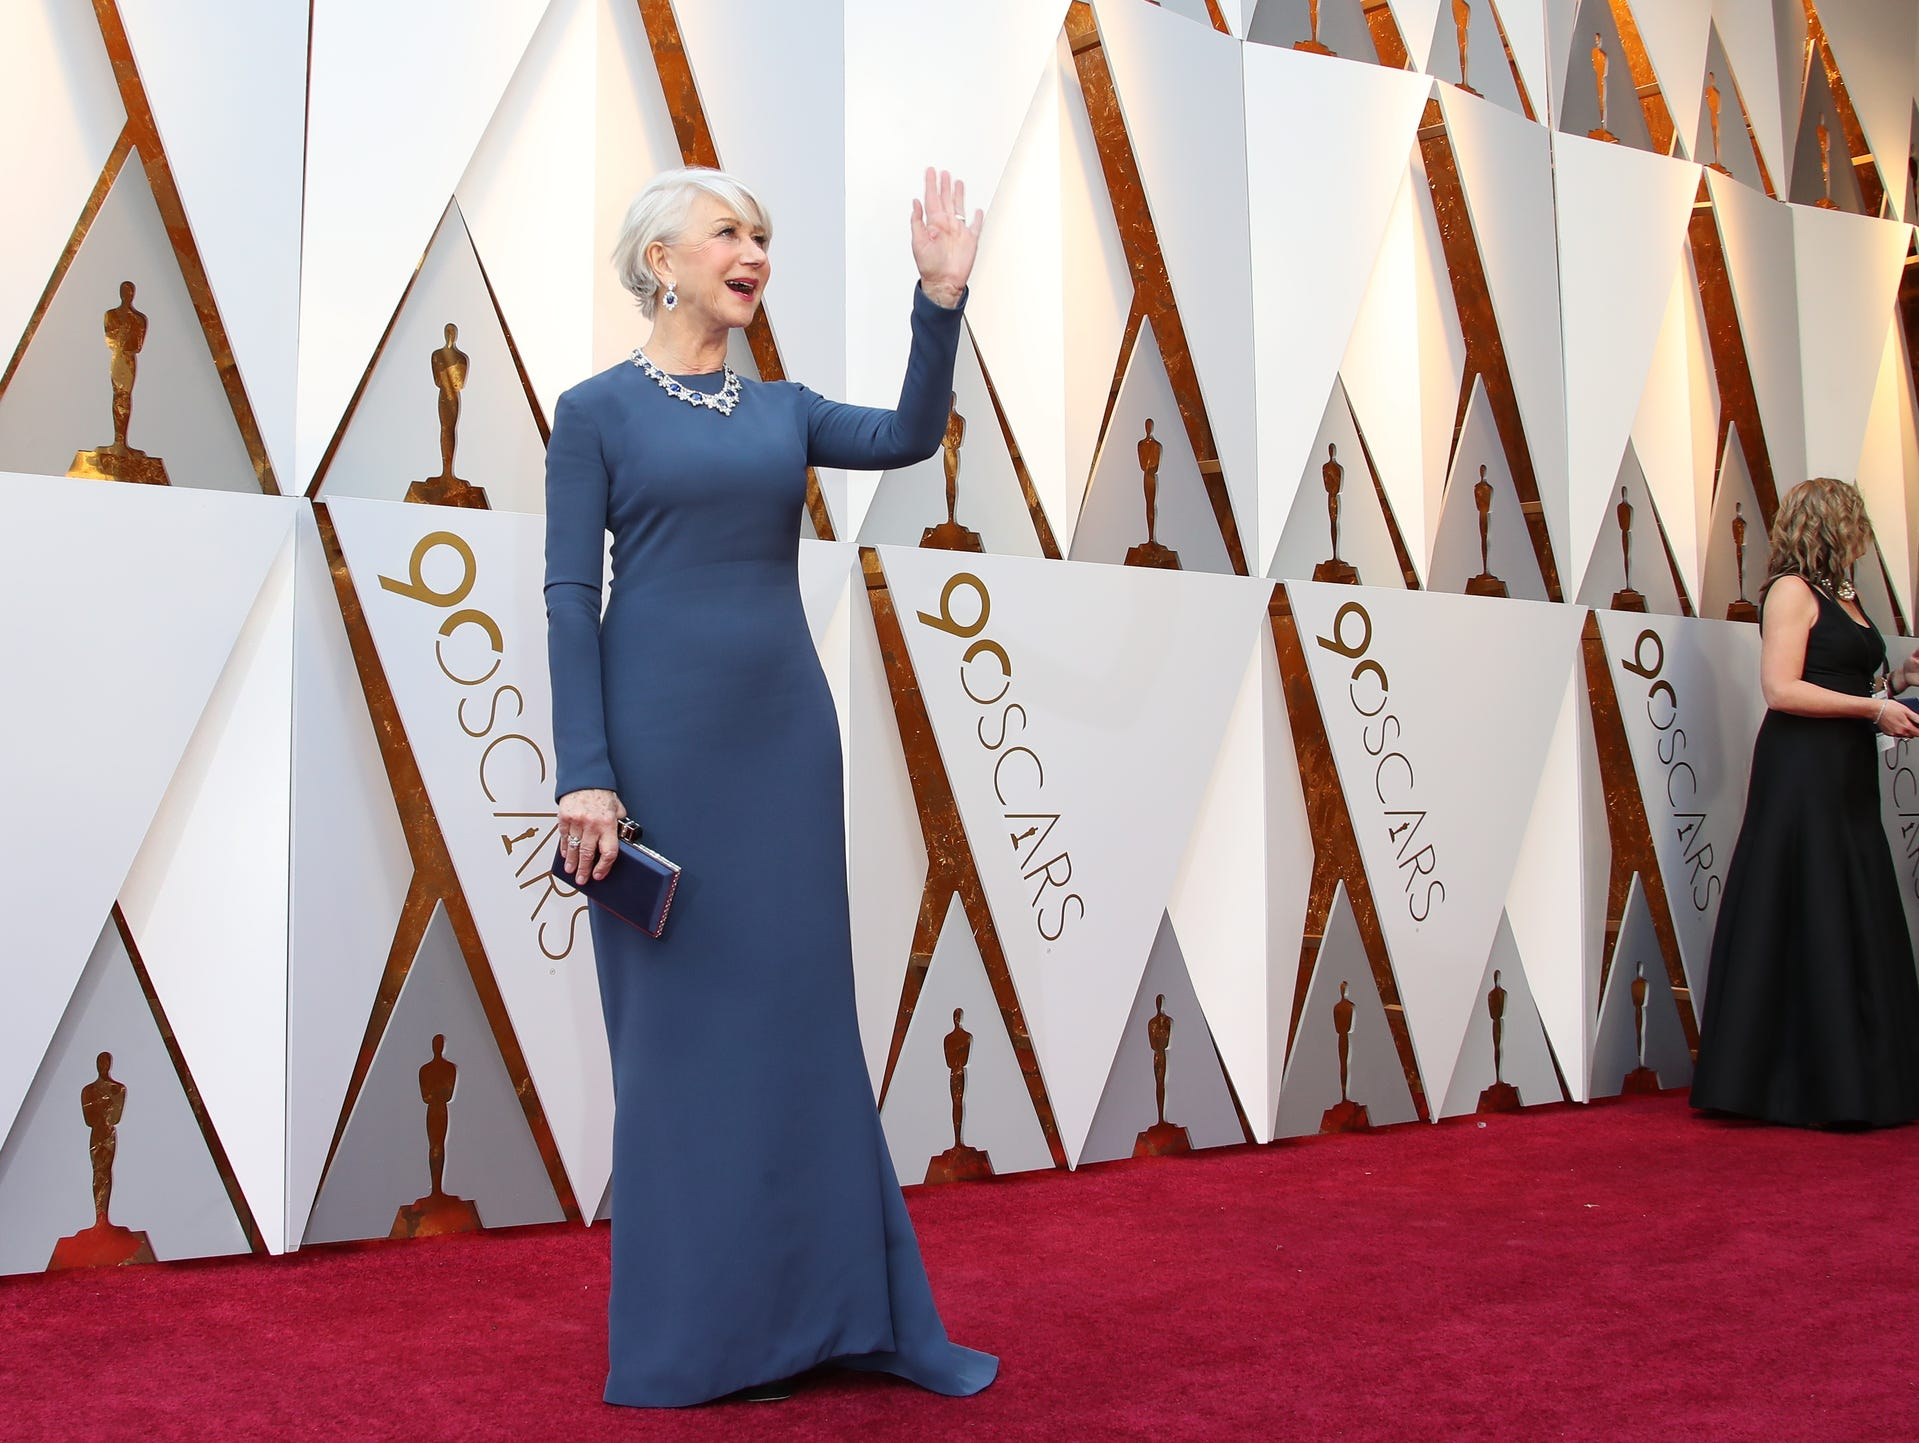 Helen Mirren arrives at the 90th Academy Awards.